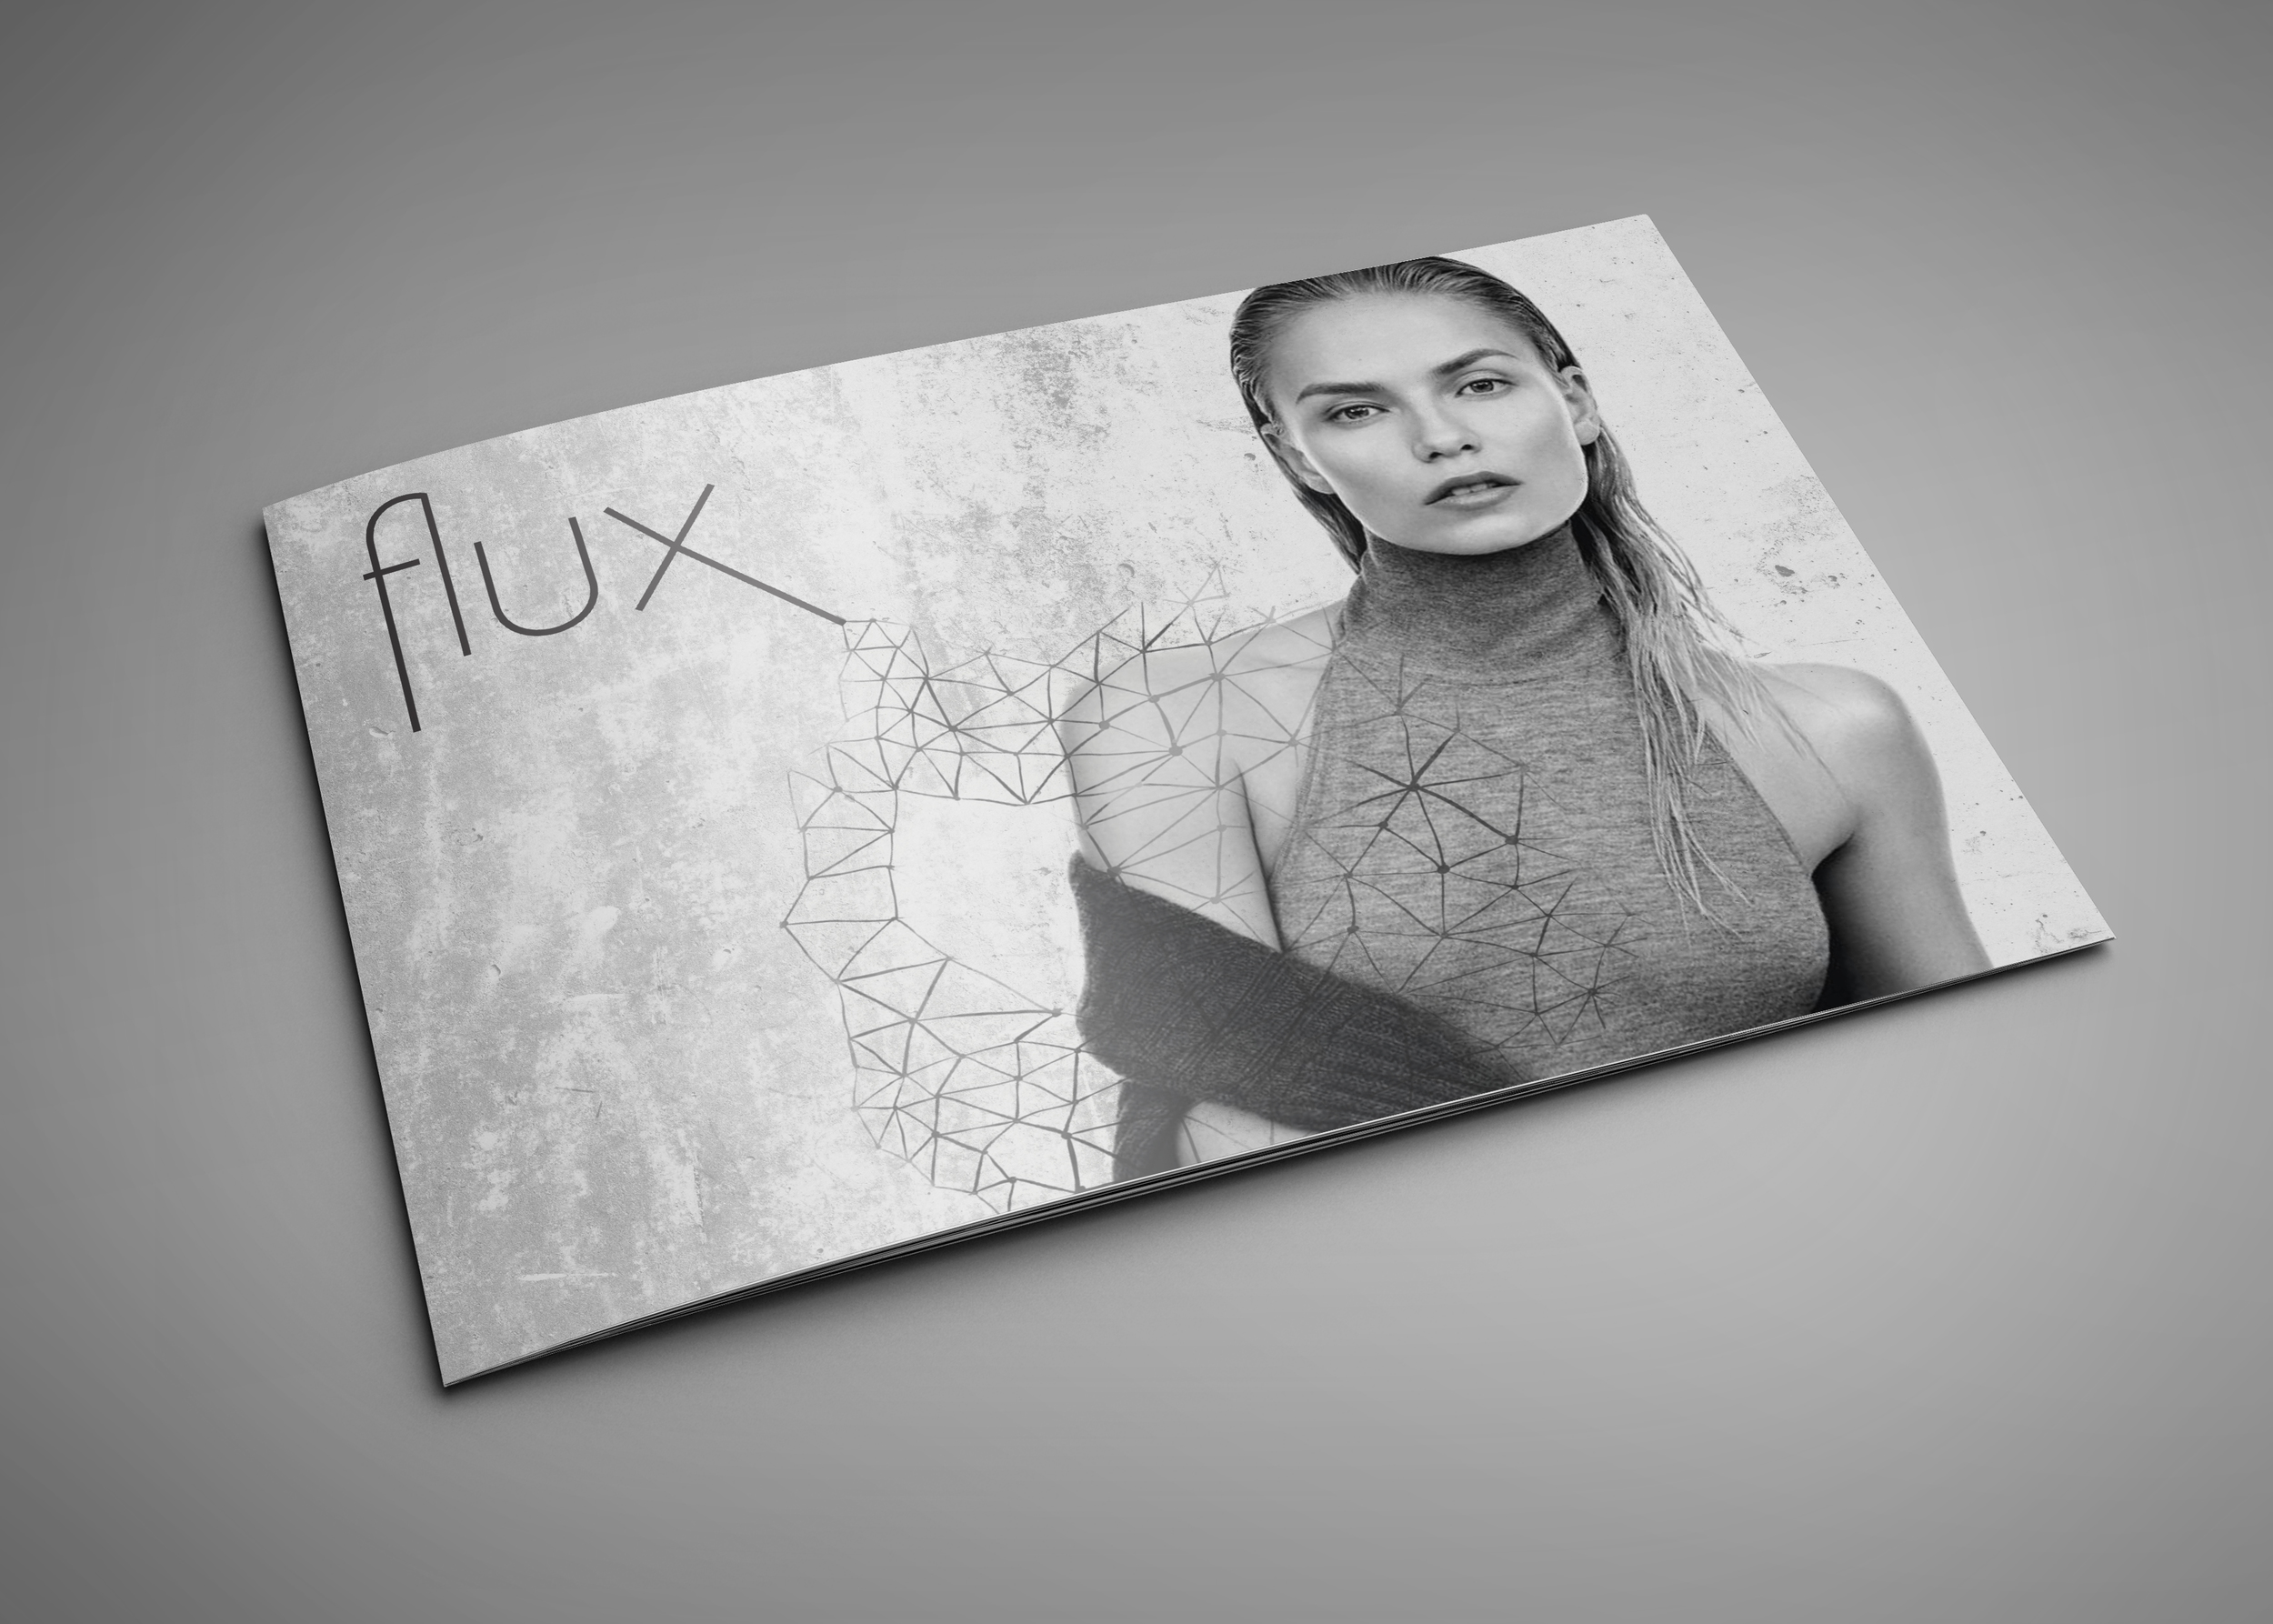 """Flux is a mock company created for the class Contemporary Issues at the Savannah College of Art and Design. The assignment was to create a both ethically and environmentally sound company. Flux is a sustainable athletic wear brand for the active woman. It is a """"work to gym"""" line and will include pieces that are versatile, chic, sporty and comfortable.Co-owners of Flux are Mimi Patten, Reese Timberlake and Allyssa Brown."""